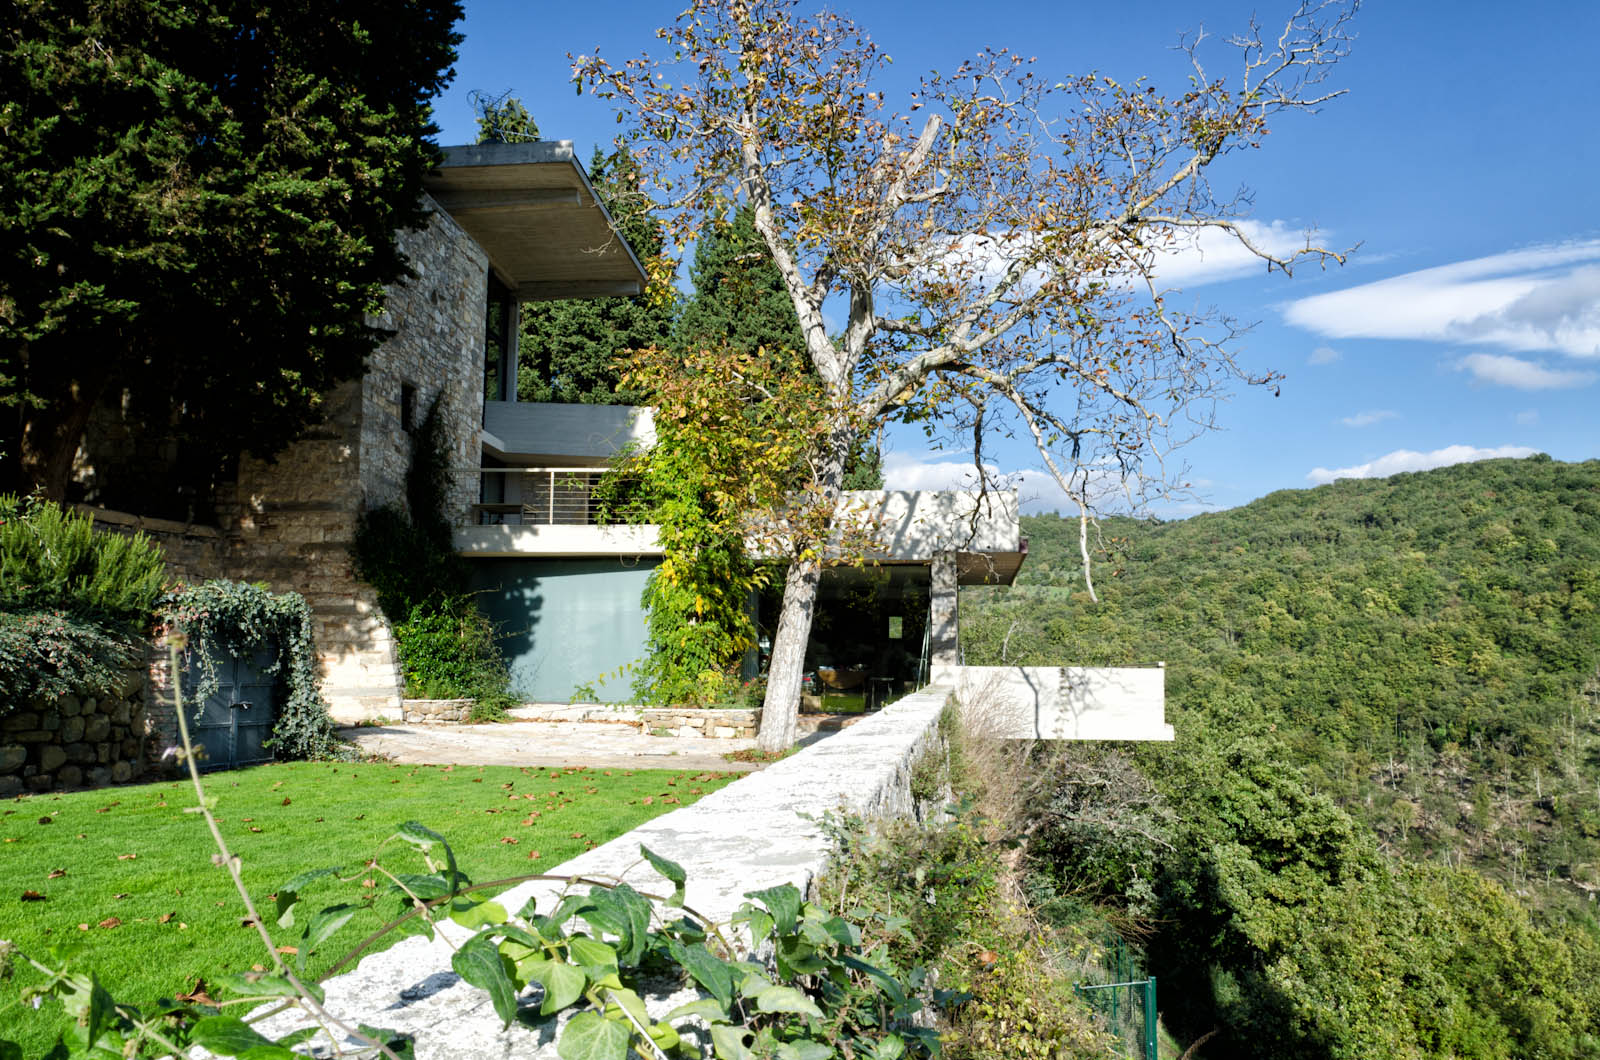 villa waddel in fiesole by architect and designer Thedore waddell near Florence